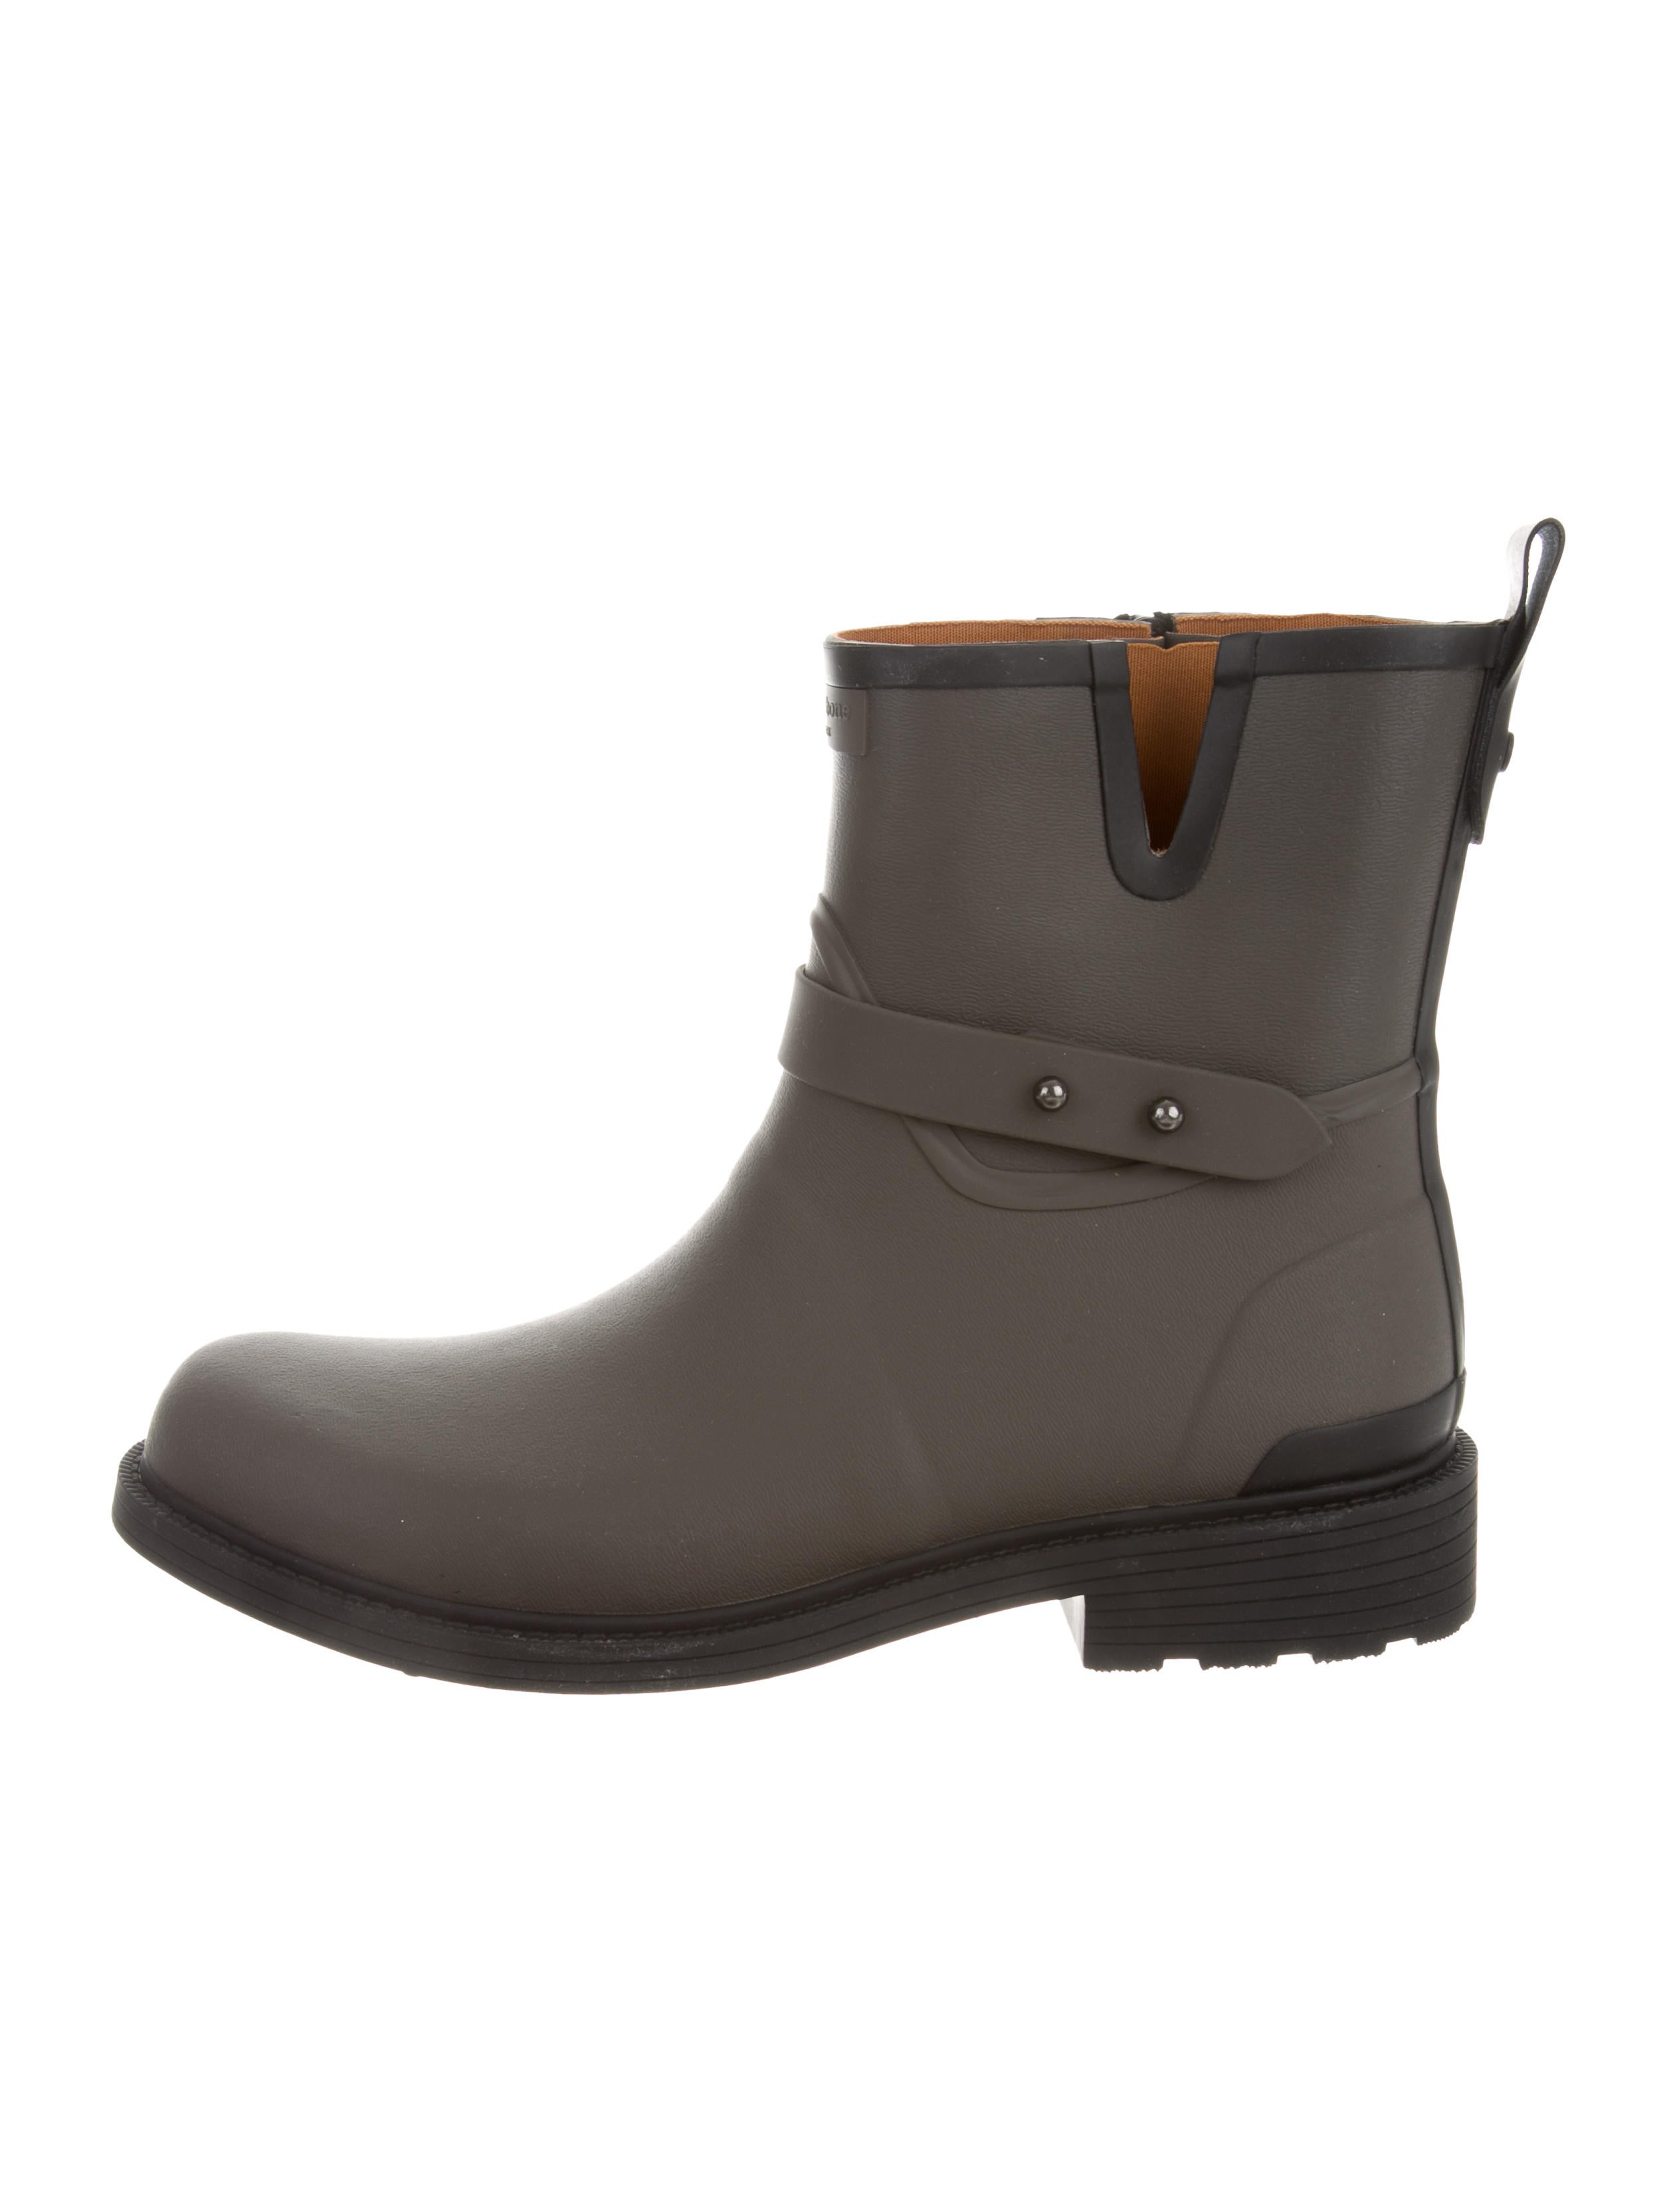 Rag & Bone Logo-Accented Rain Boots discount 100% guaranteed clearance outlet cheap with paypal cheap sale pick a best mhr0KVA